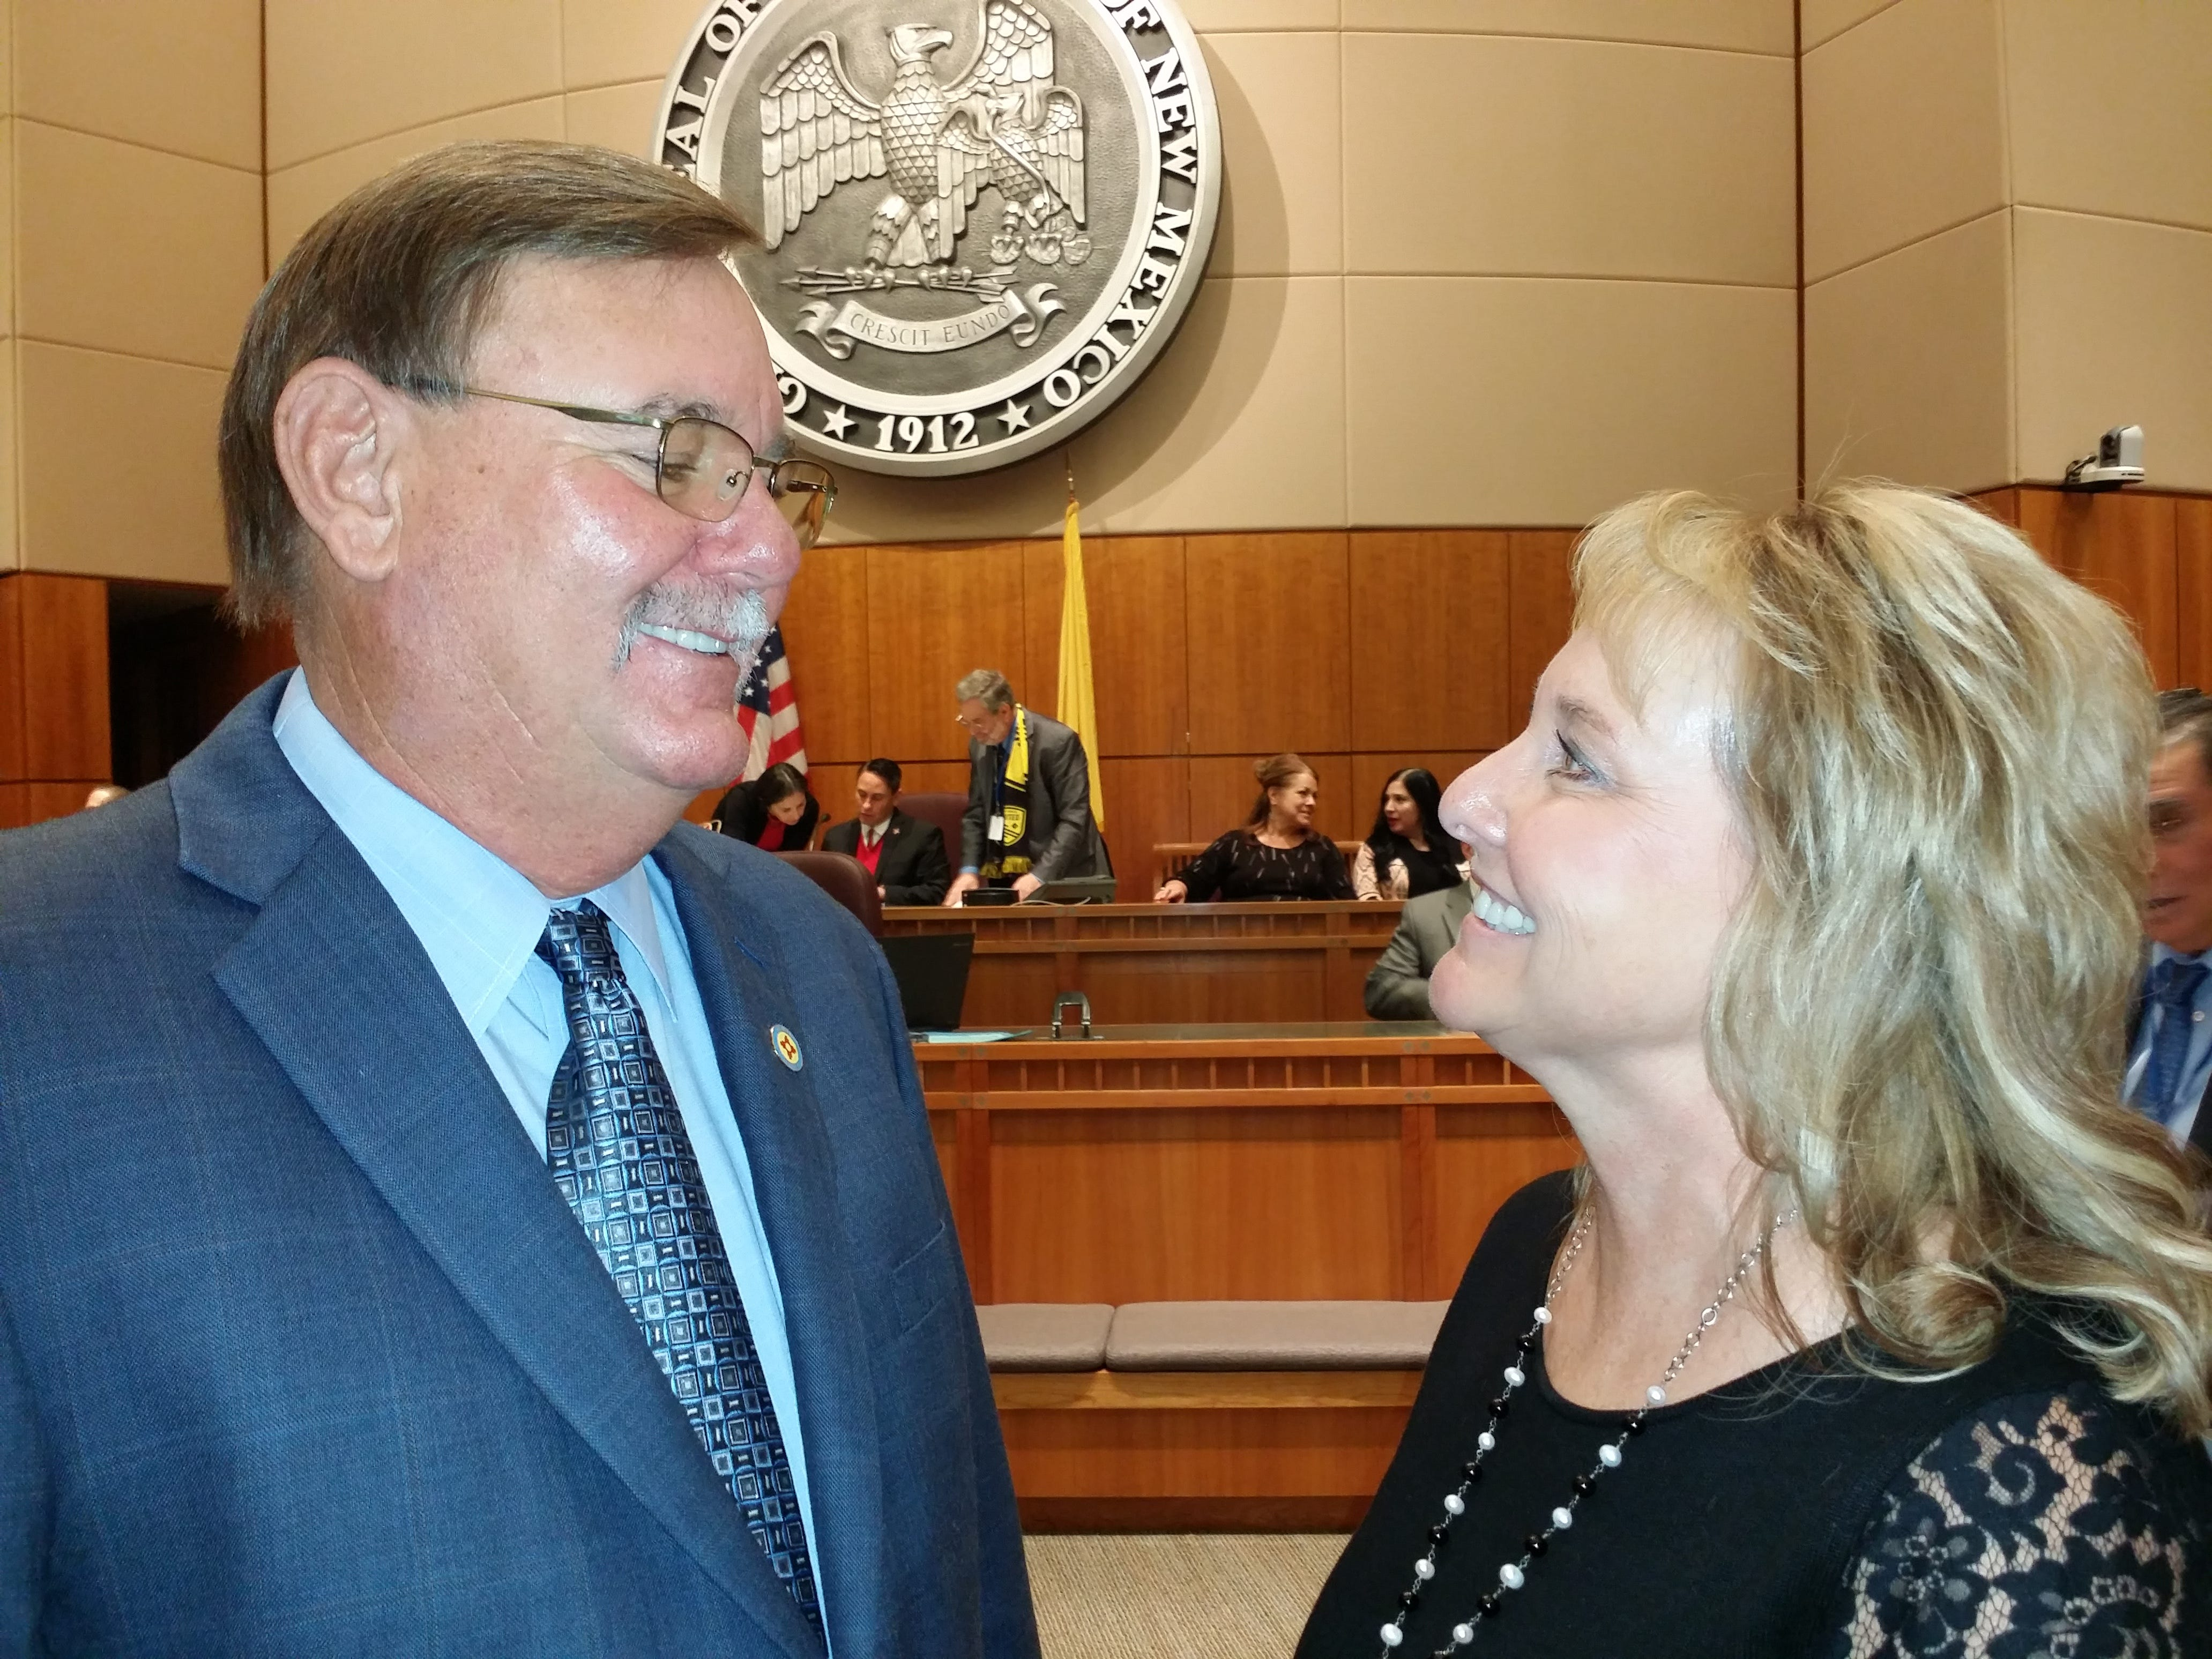 Sen. Gregg Fulfer with wife Kim Fulfer ahead of opening ceremonies at the New Mexico Roundhouse in Santa Fe Jan. 15.